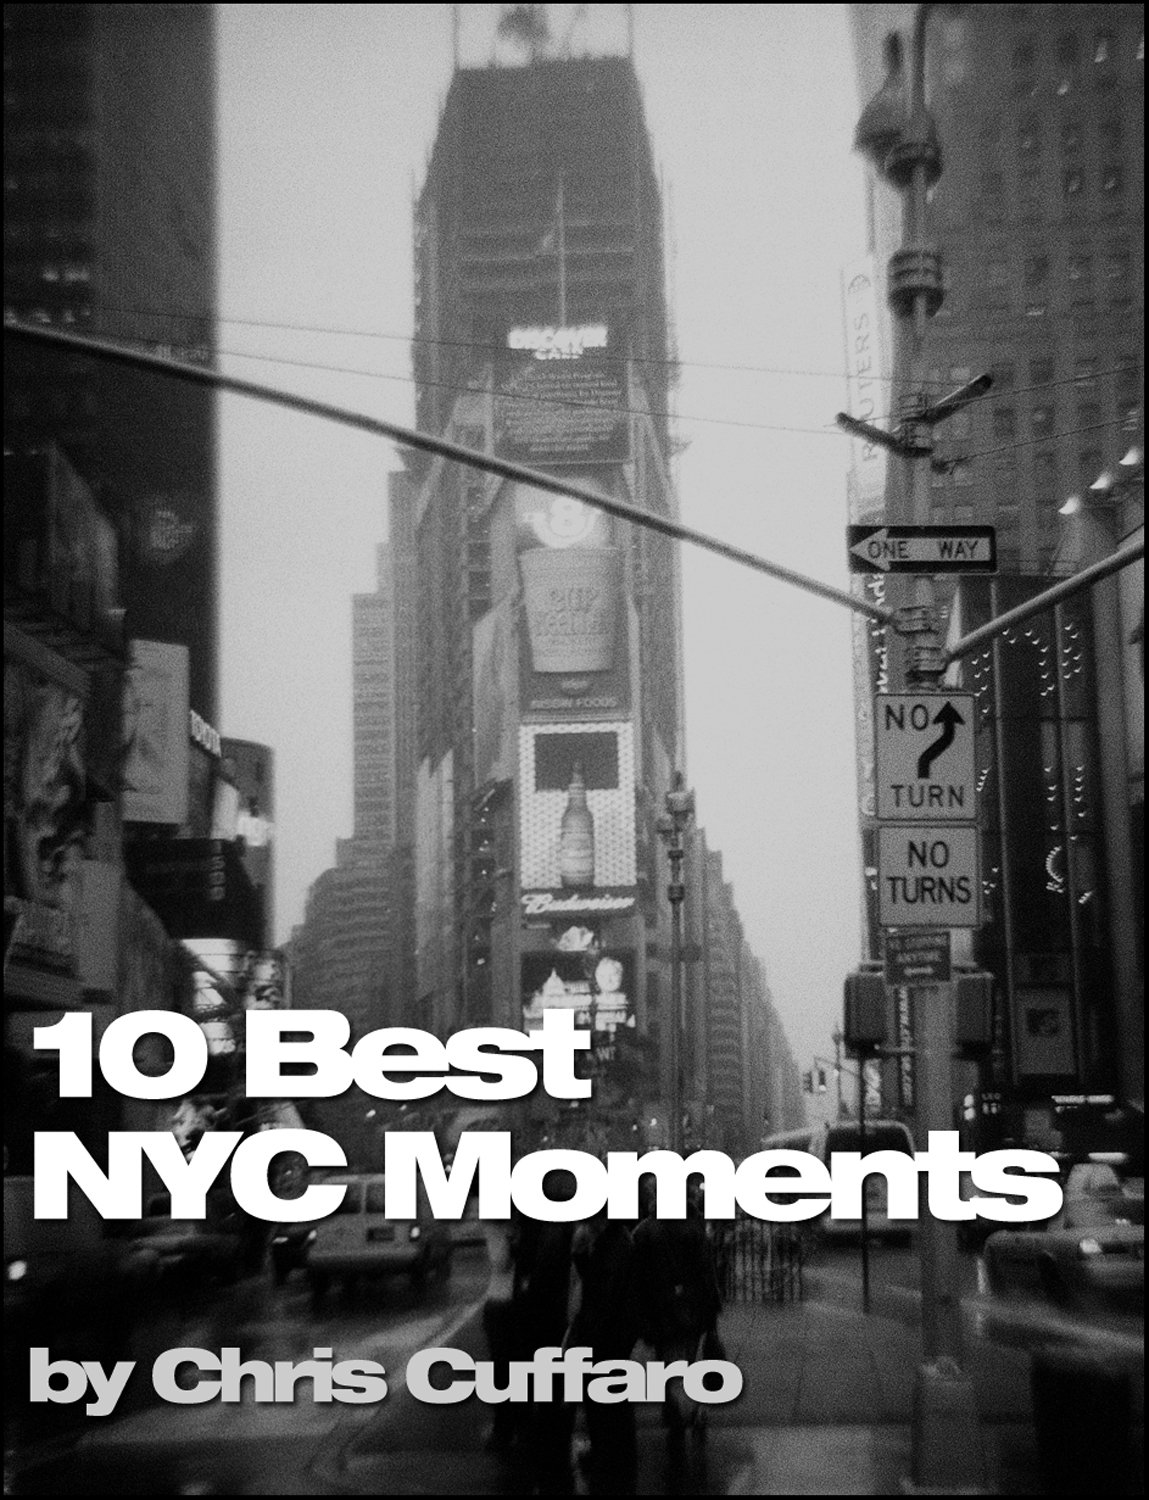 10 Best NYC Moments